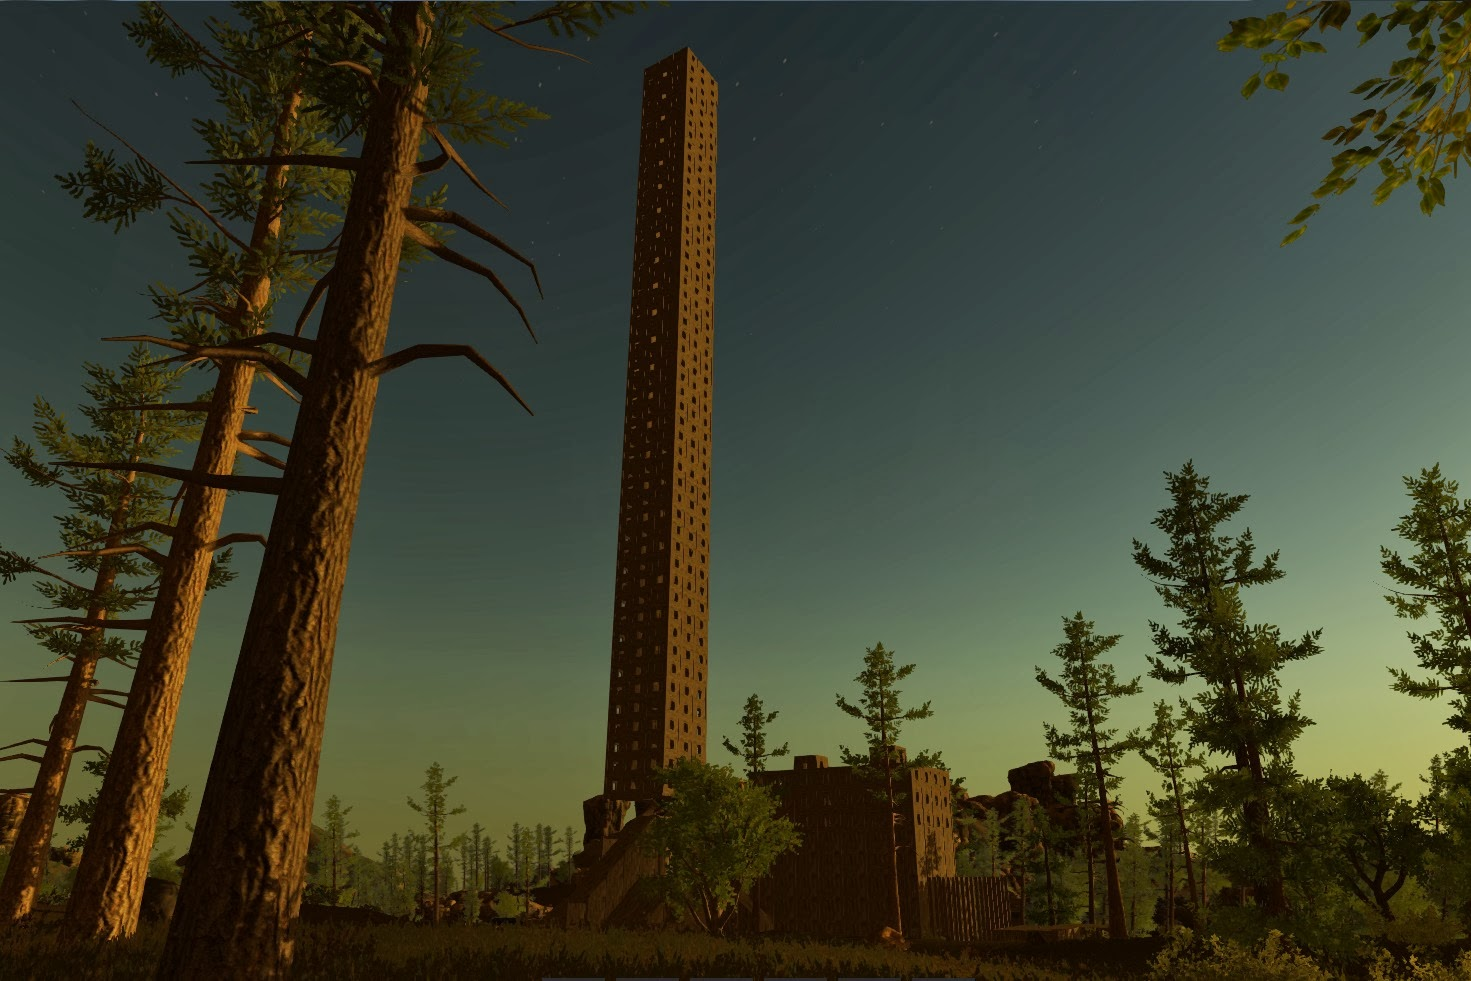 SL Newser - Other Grids, MMOs, and Games: Meanwhile, Back in Rust